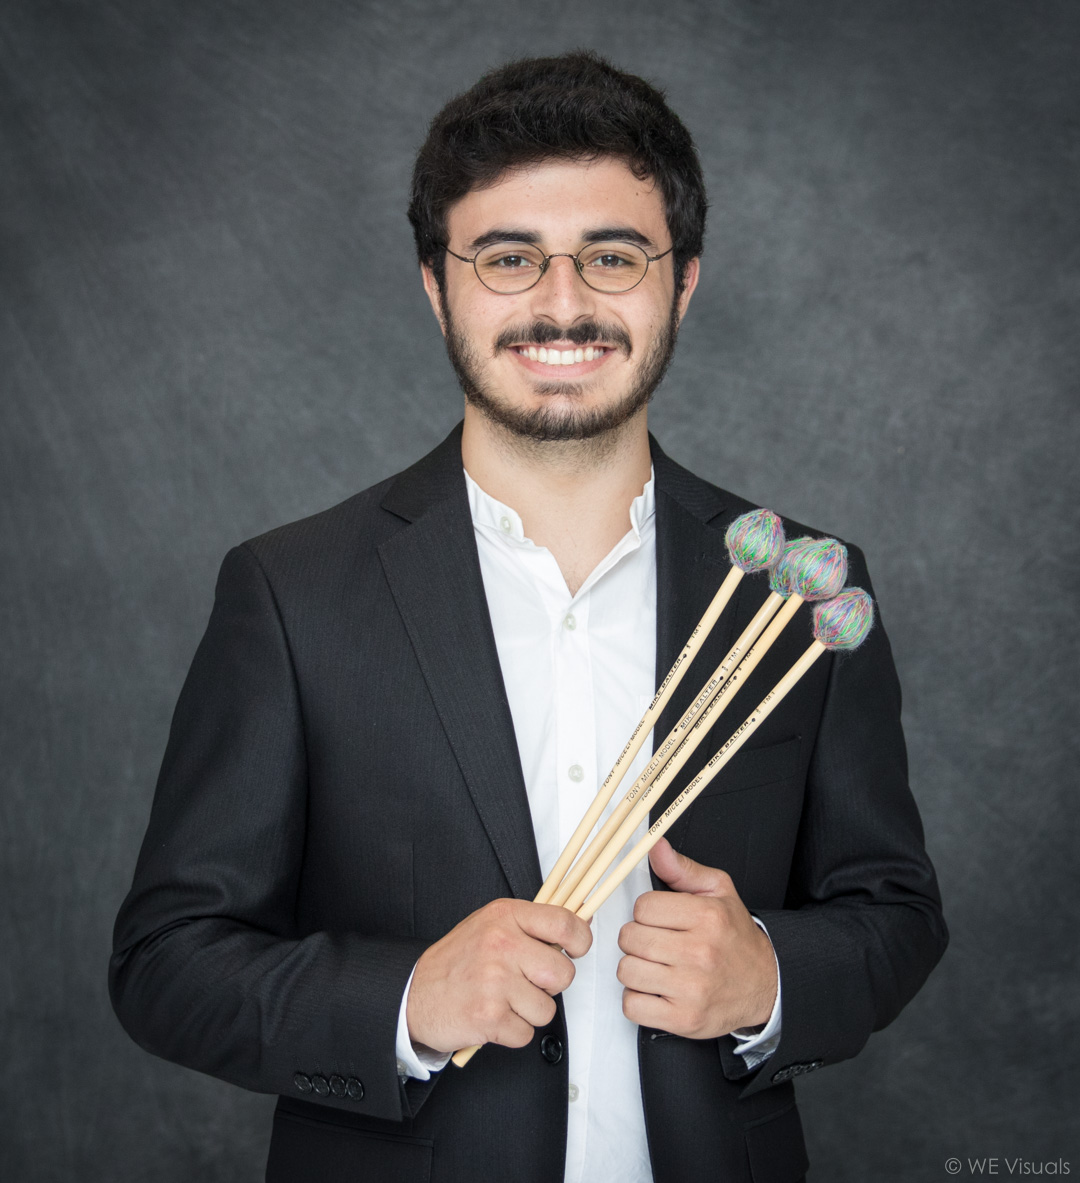 Nick Calcaterra | 2018 Member - Being a professional mallet player seemed like a one in a million shot before attending MalletLab. I found myself surrounded by like-minded musicians from a multitude of backgrounds, a faculty that has hugely molded the percussive world, receiving game-changing information that otherwise took me months(maybe years) to figure out on my own or on the internet. I won't forget the lessons I've been taught about how to be myself in the music and as an entrepreneur. MalletLab is giving all mallet players a reliable resource to share and grow our passion to music lovers worldwide.